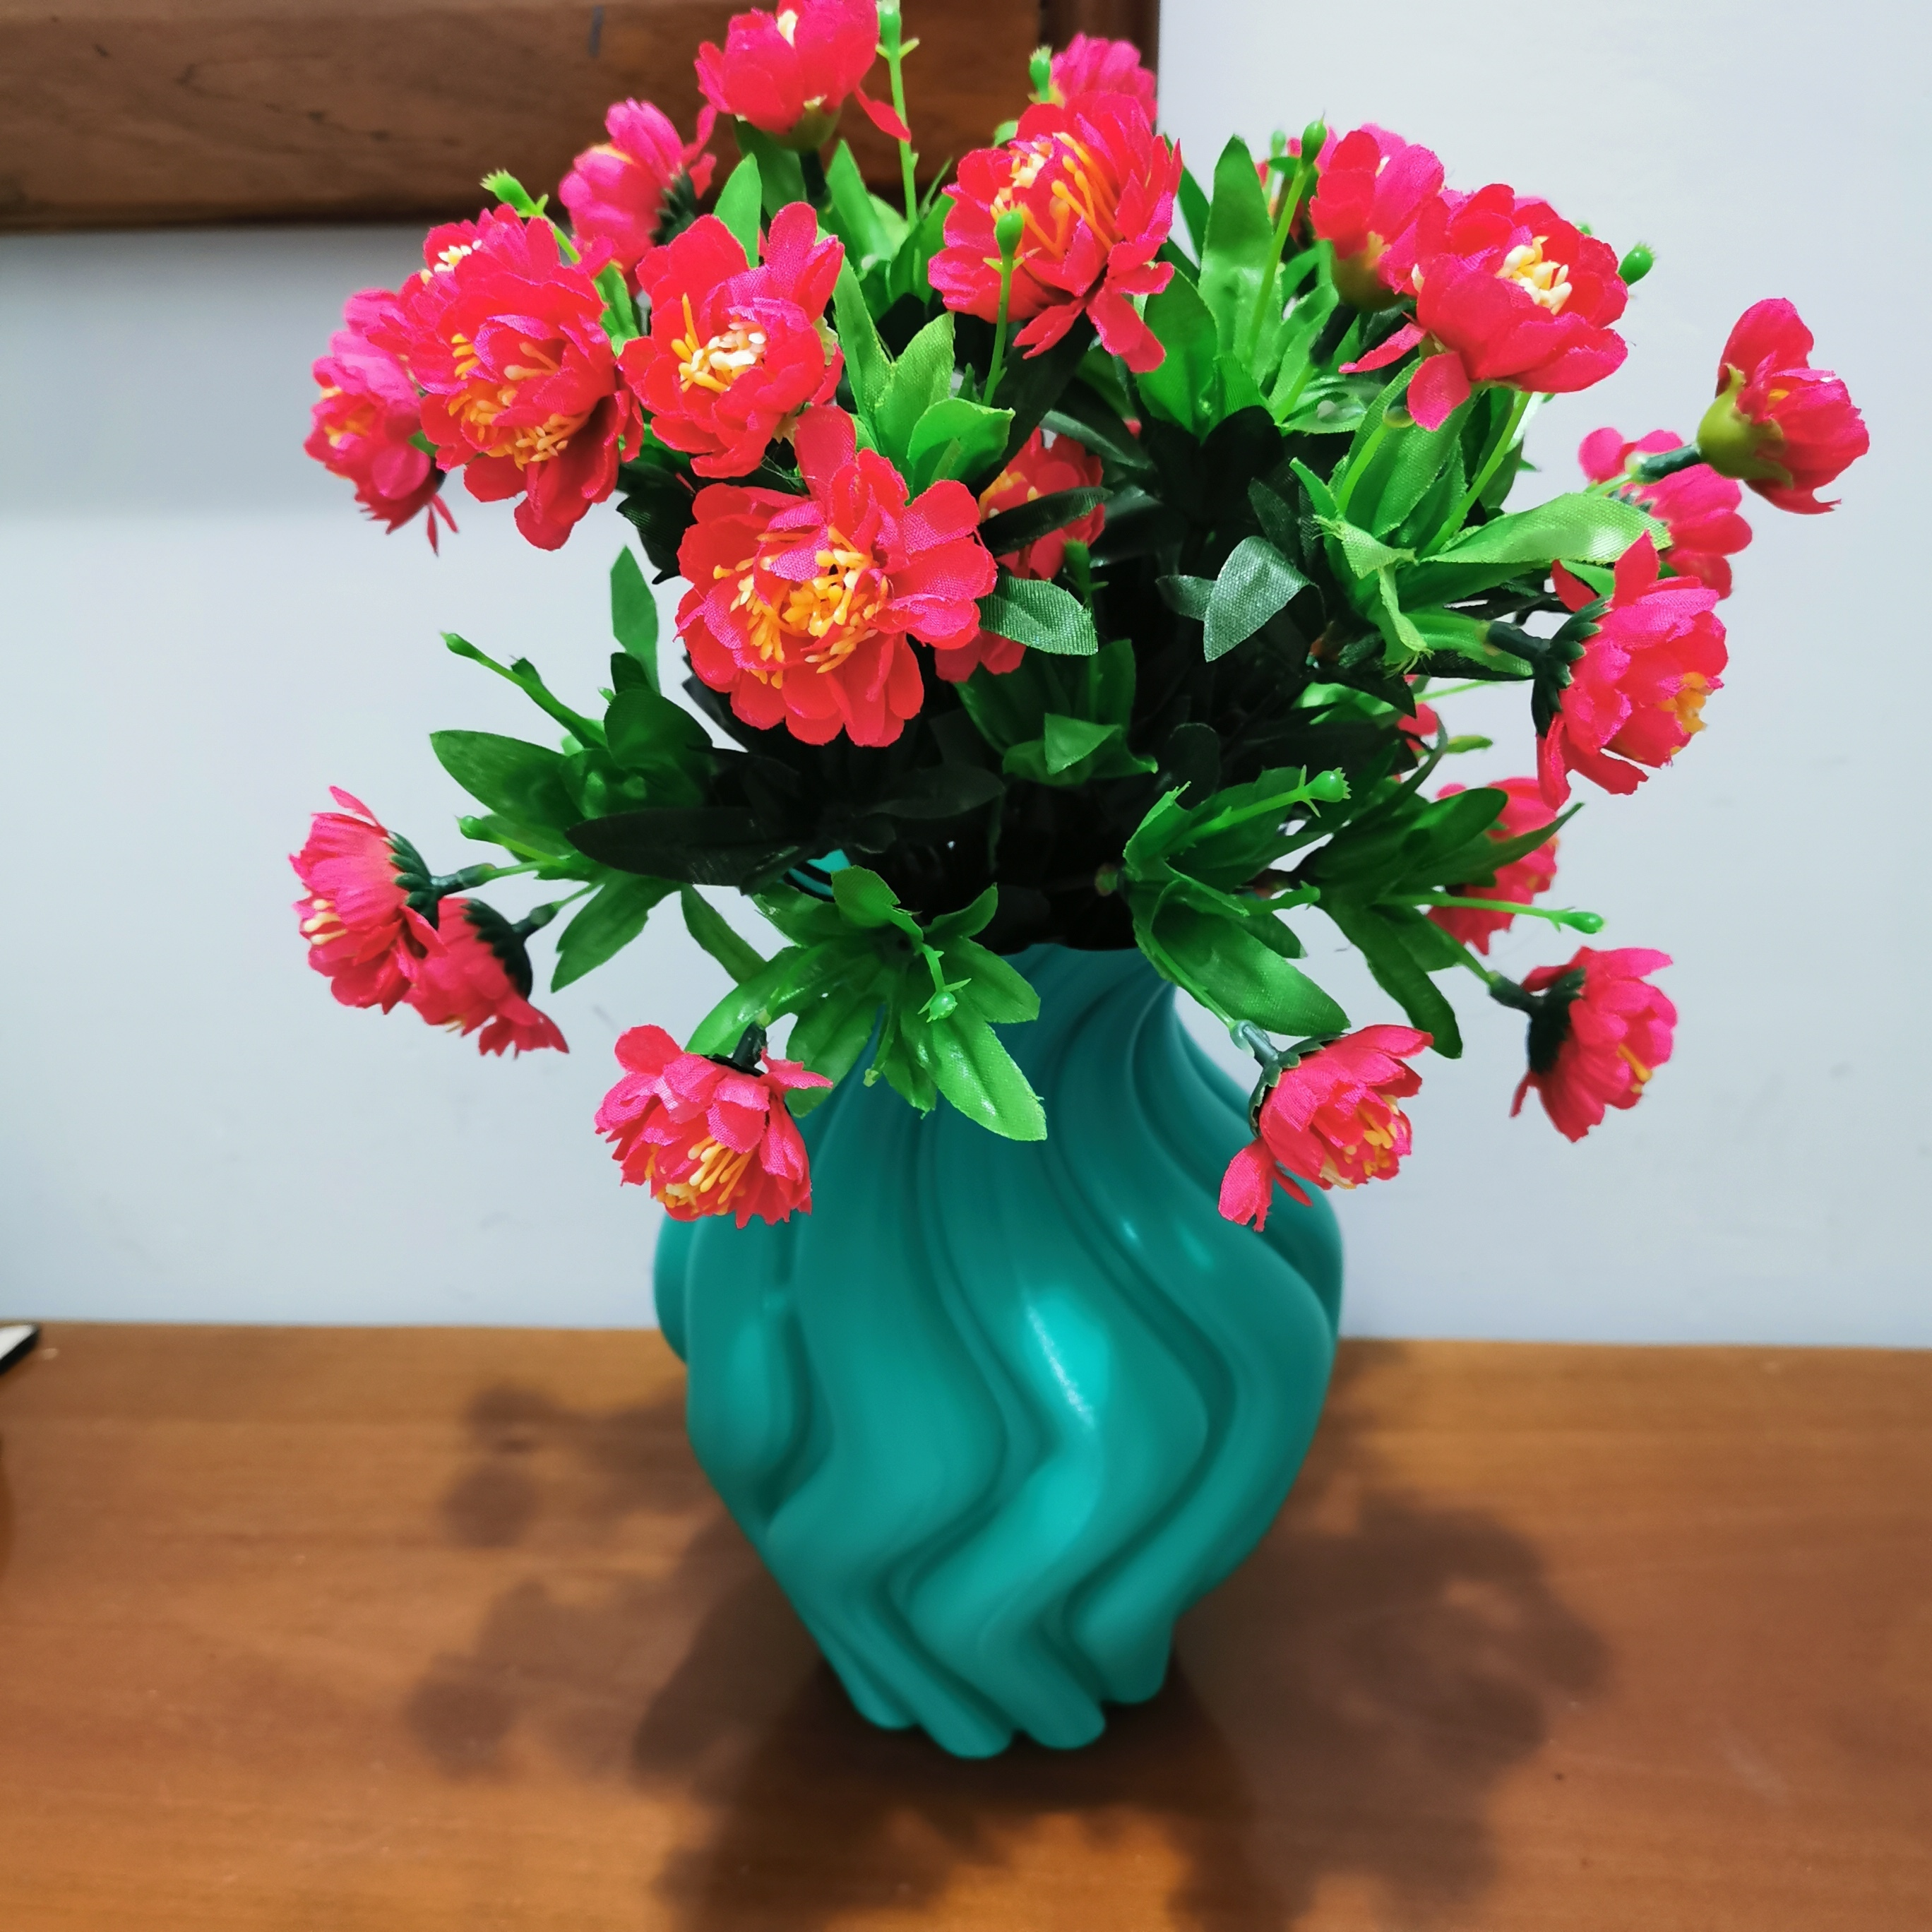 ROUNDED_TWISTED_VASE_3dprint1[1].jpg Download free STL file ROUNDED TWISTED VASE • Model to 3D print, ea3dp